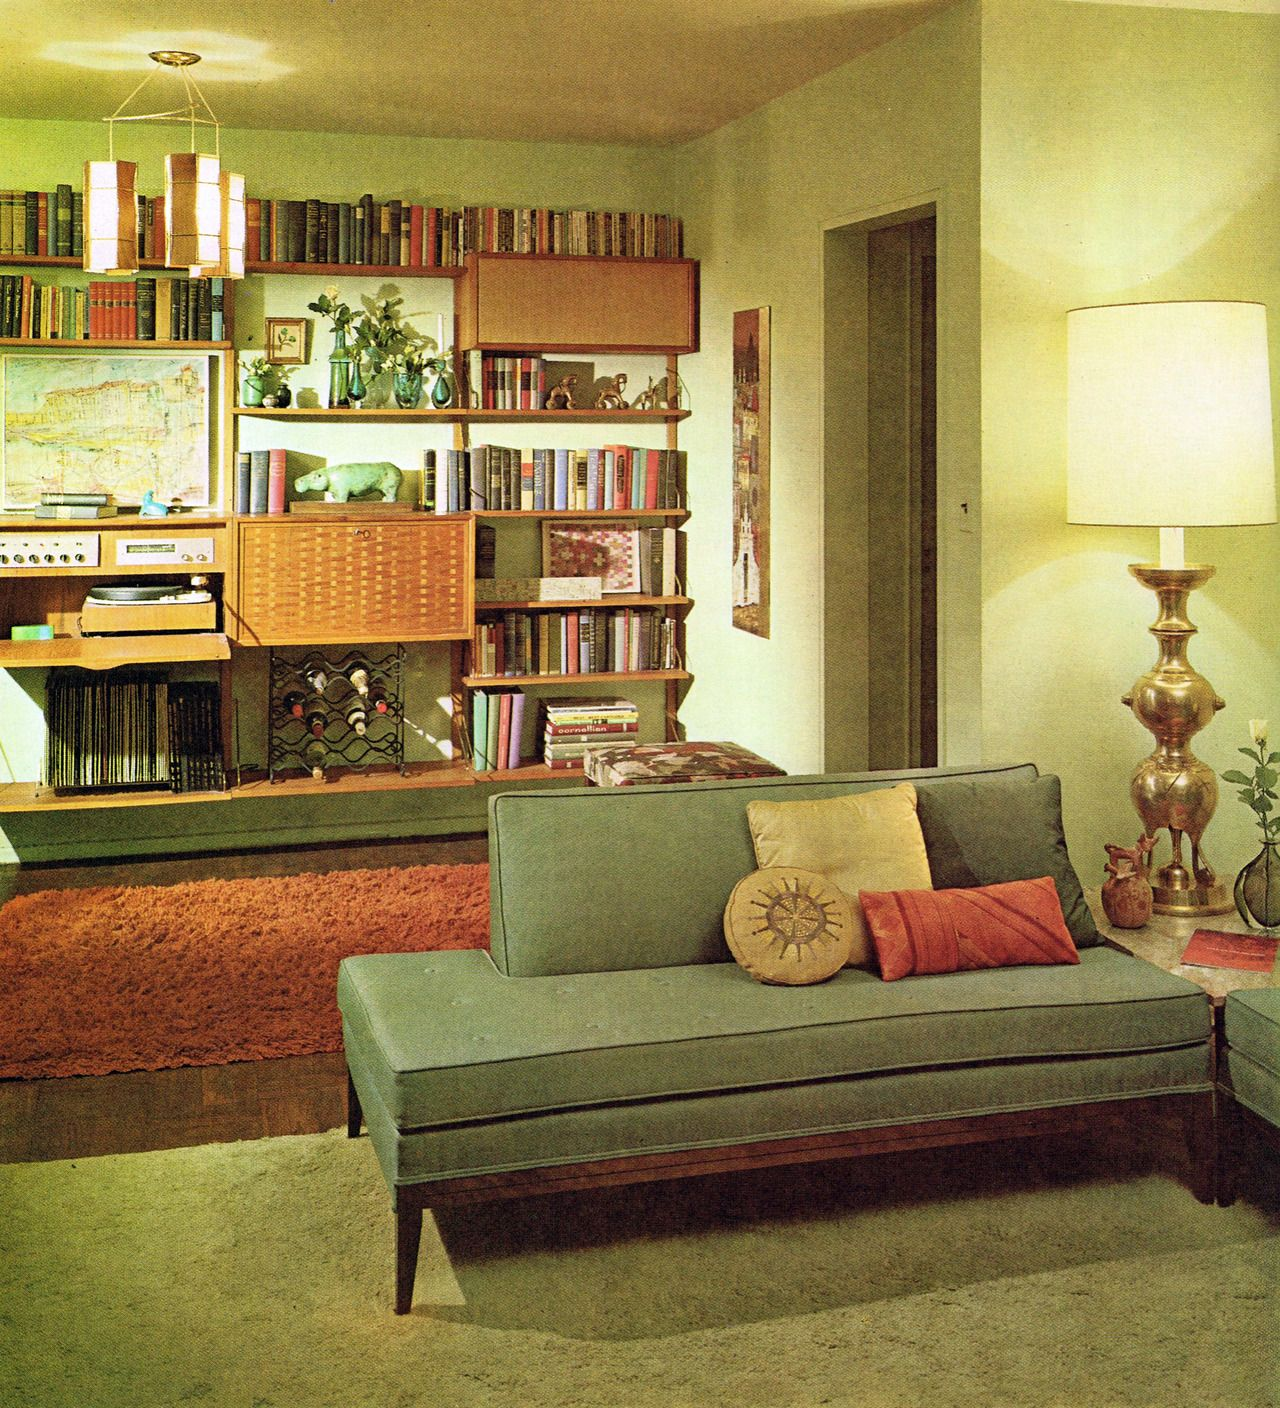 1960s Living Room Another One Of Those Amazing Shelving Units I D Kill To Have